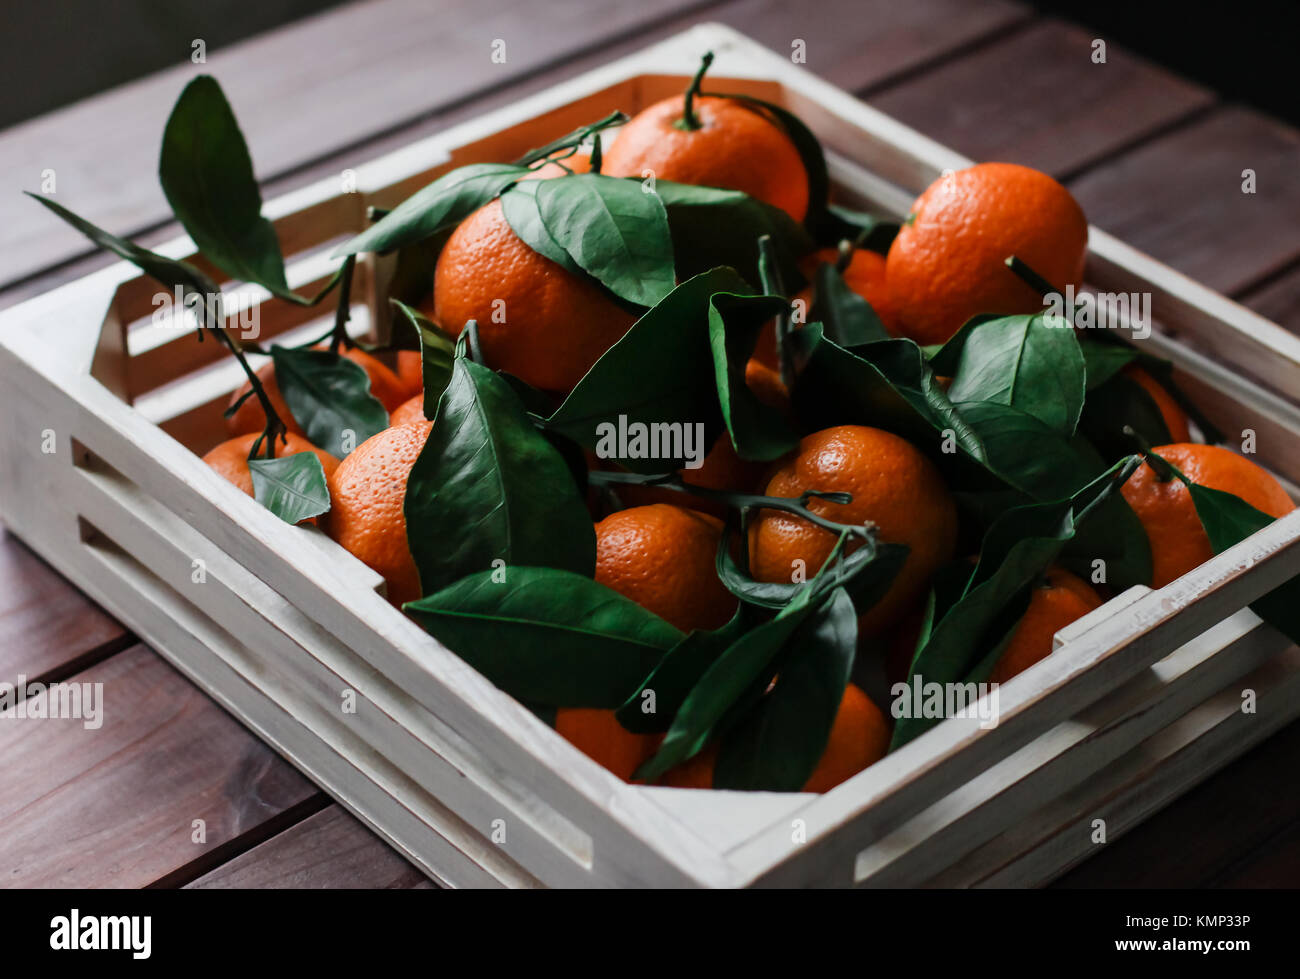 Wooden box of fresh tangerines with leaves - Stock Image